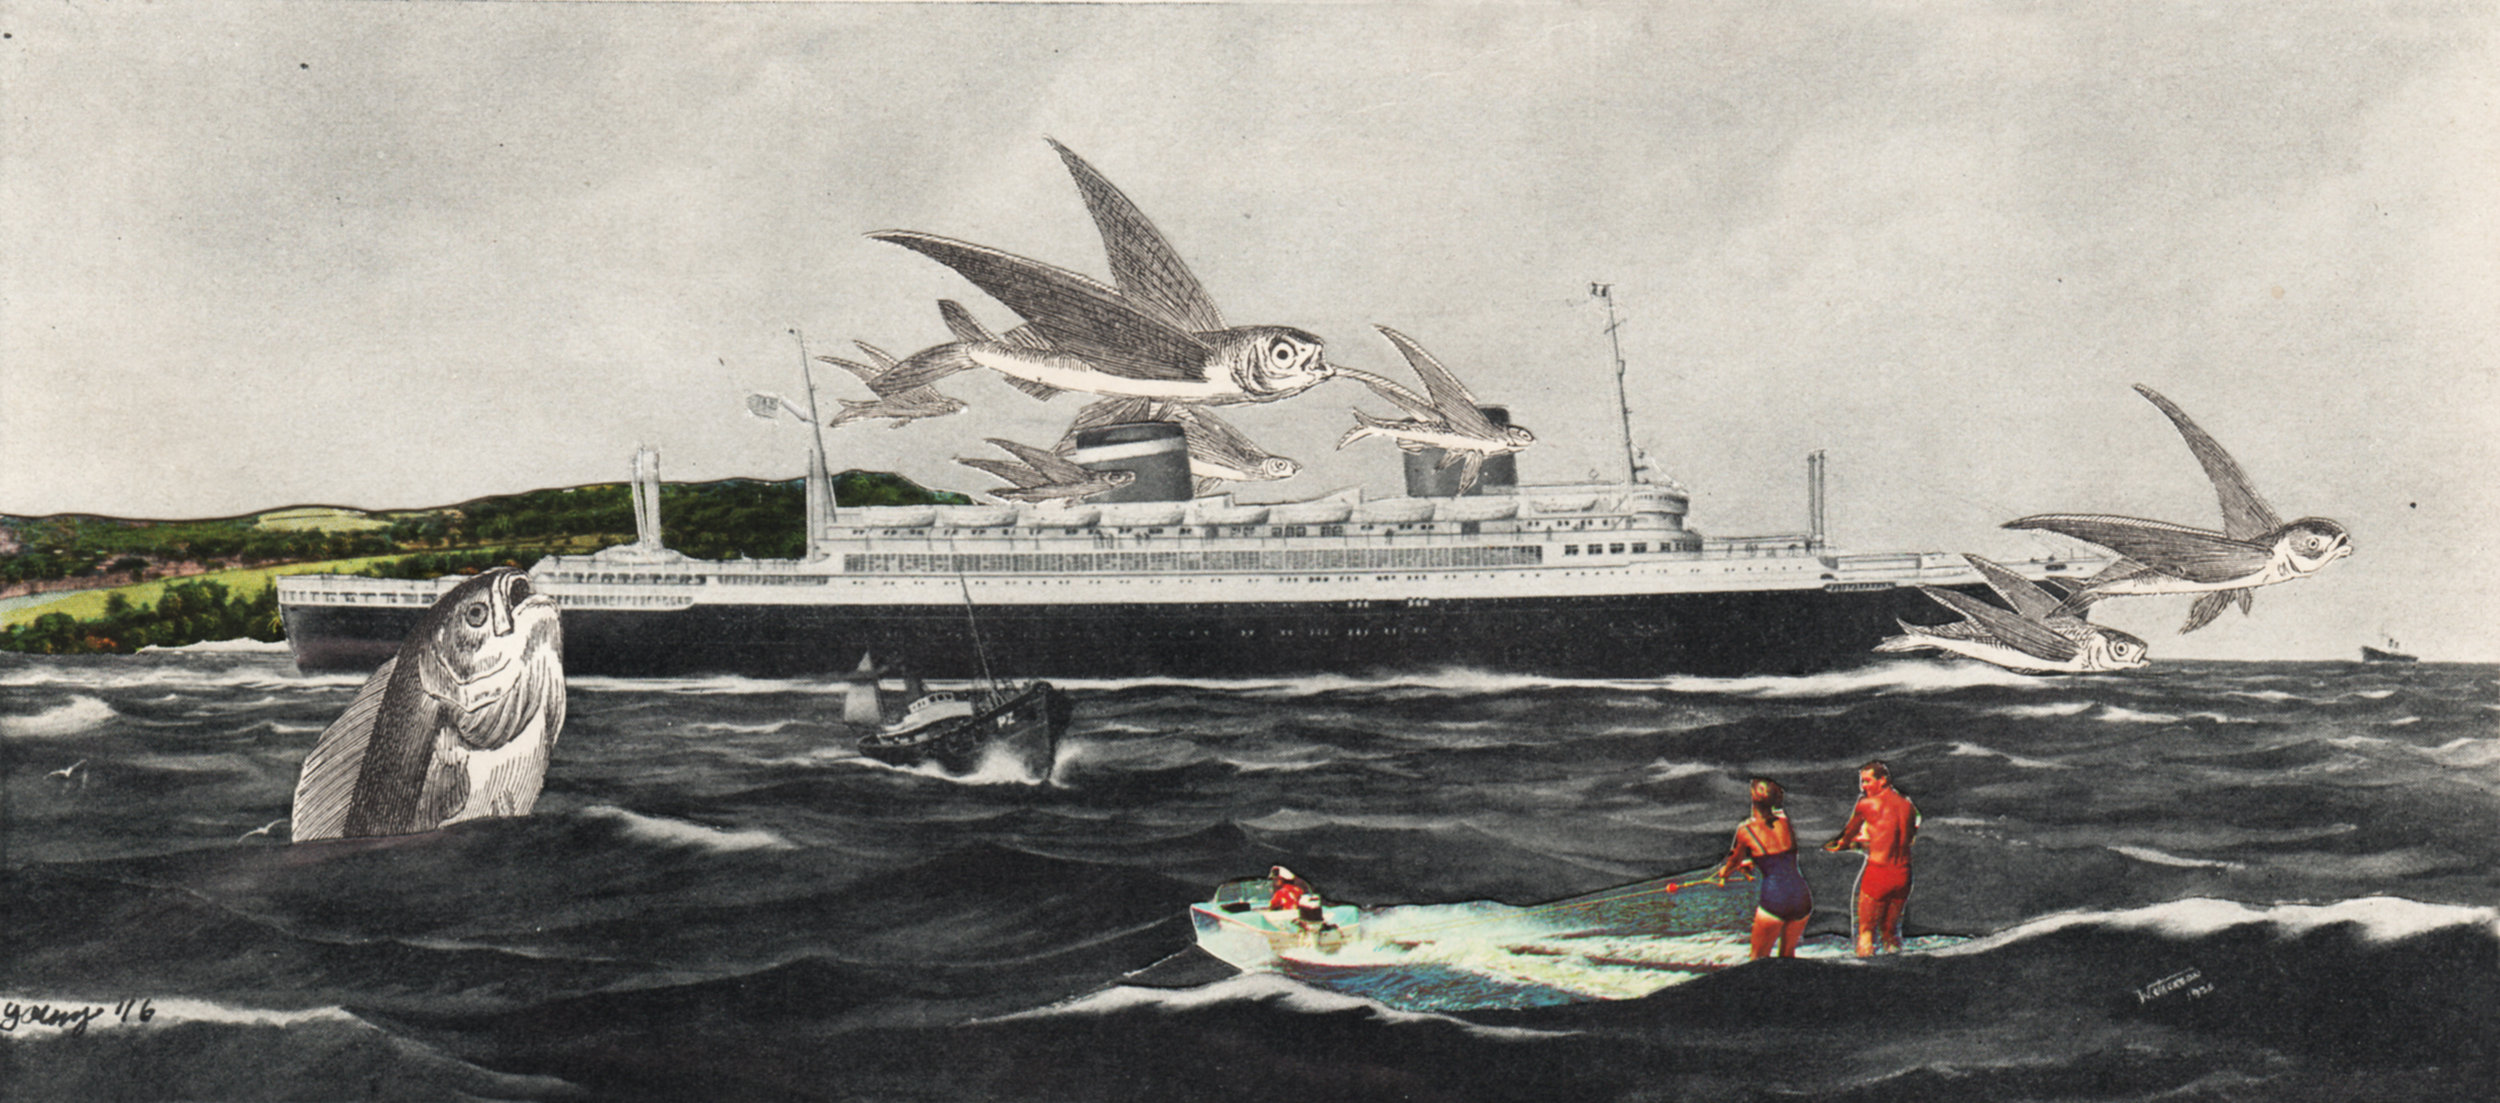 Imaginary Cruise,   2016. Analog Collage on paper